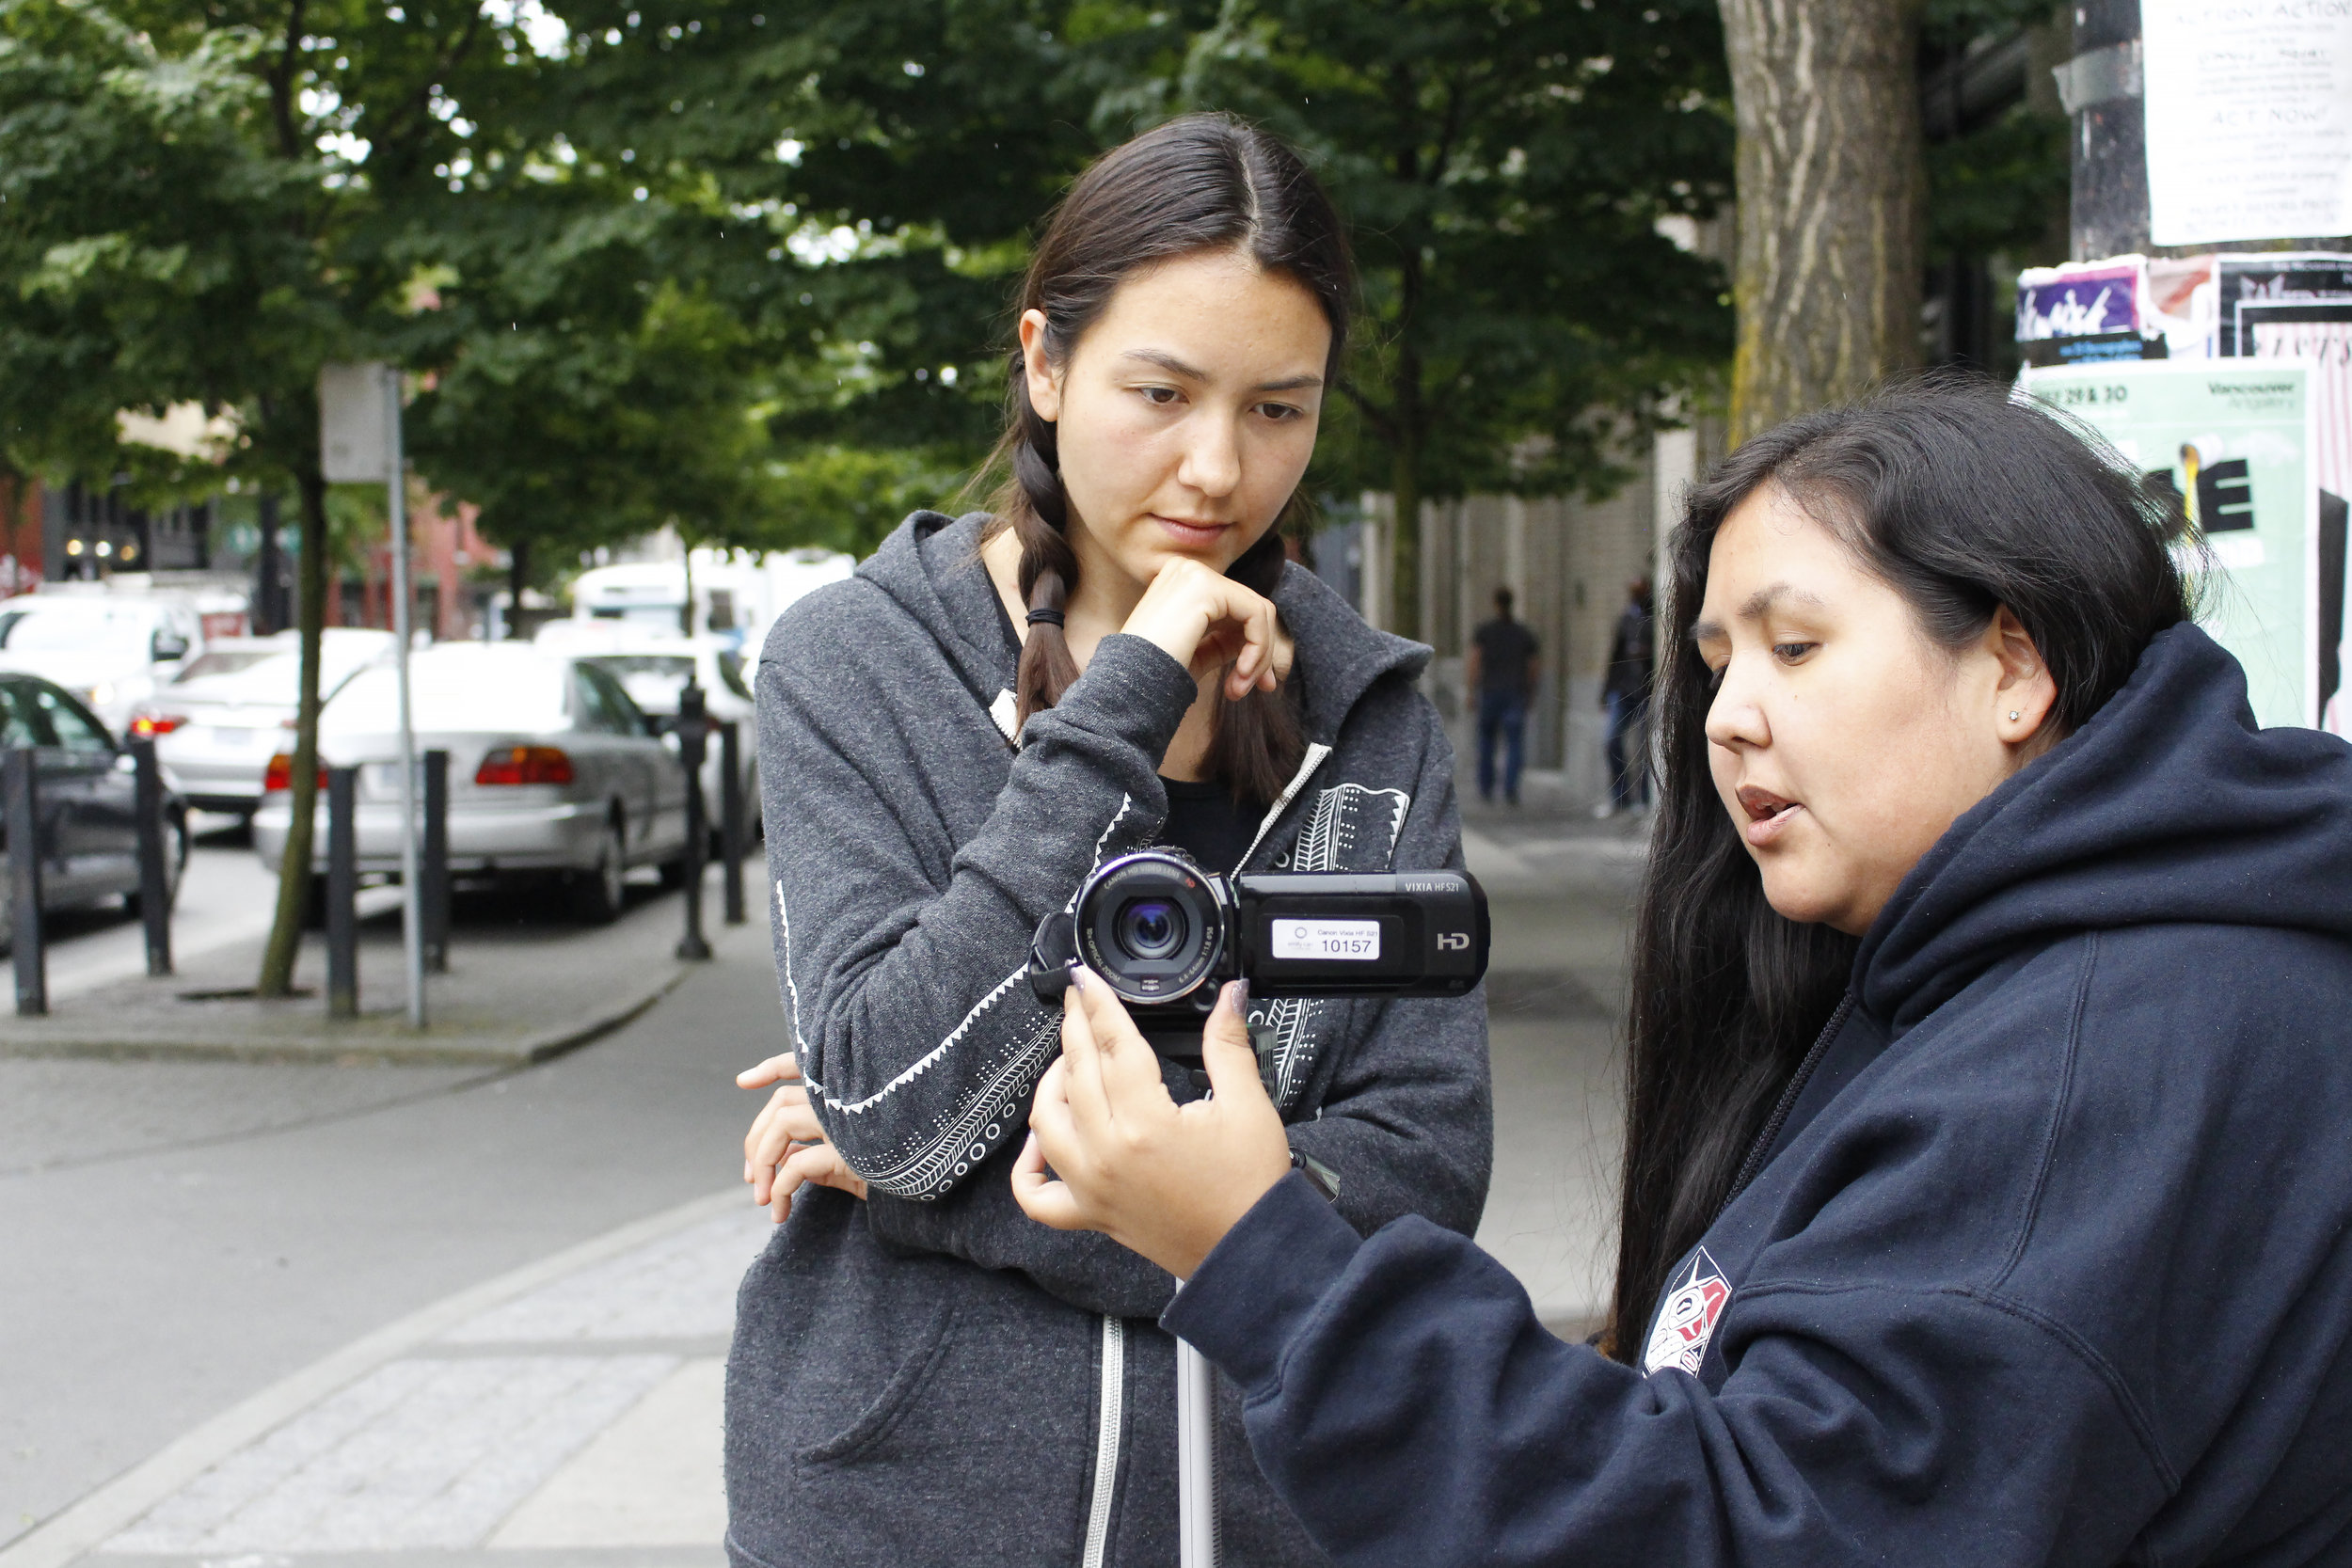 Mentor, Eileen, showing Emma the camera settings.